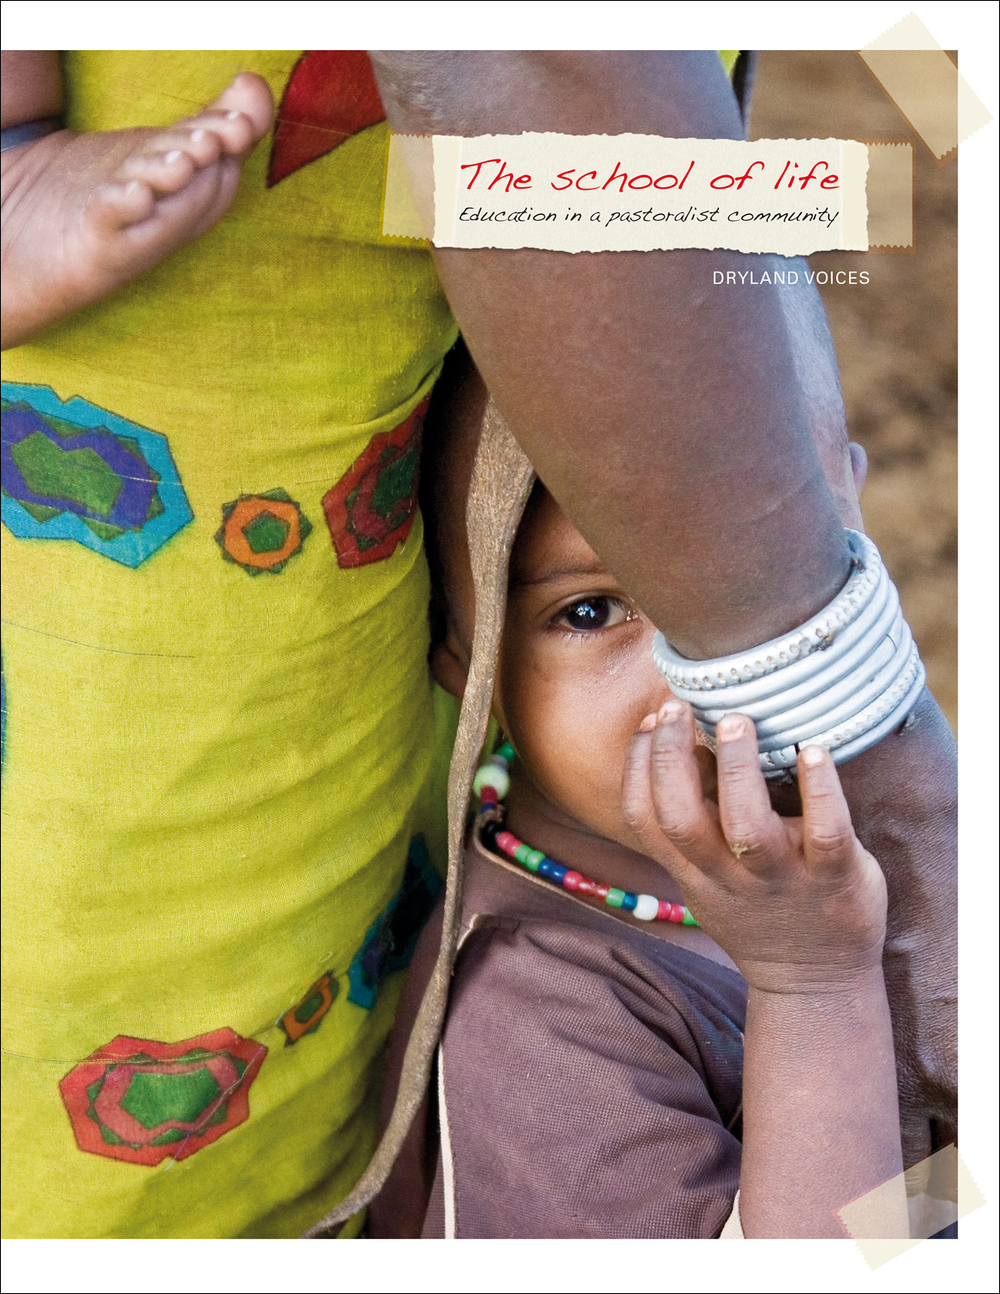 The School of Life: Education in a Pastoralist Community